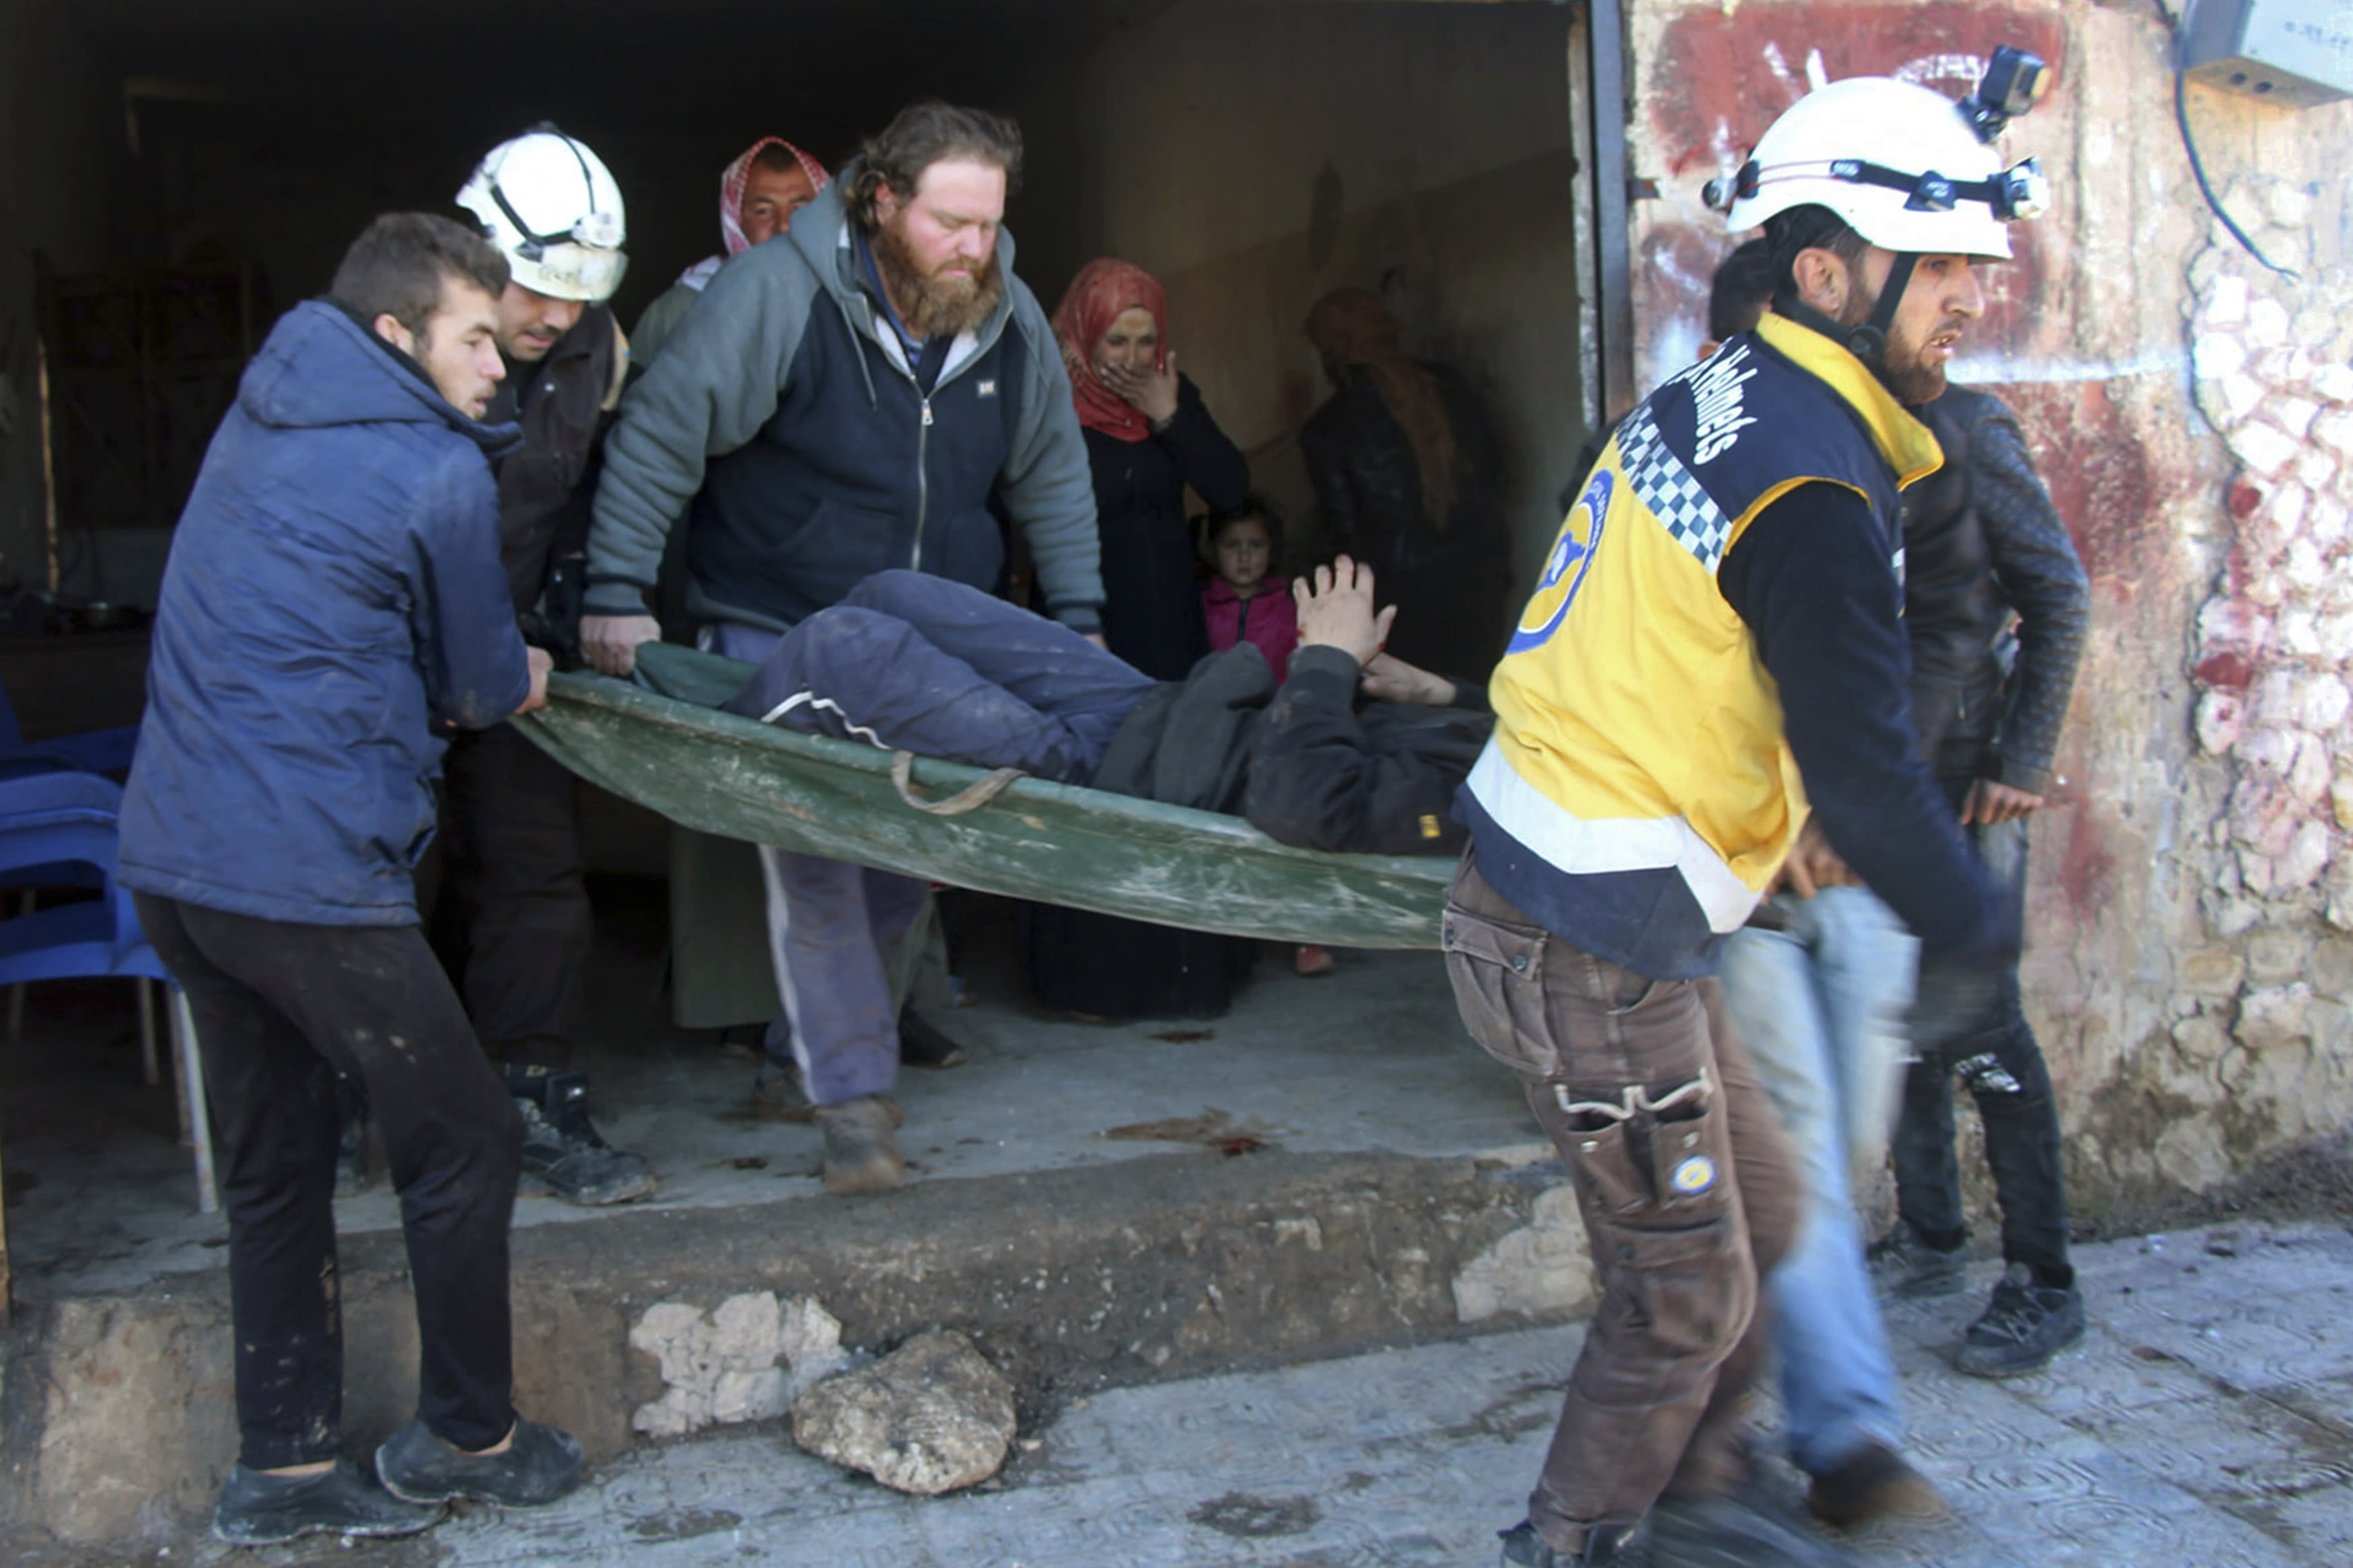 Tens of thousands flee Syria's Idlib as deadly bombings intensify